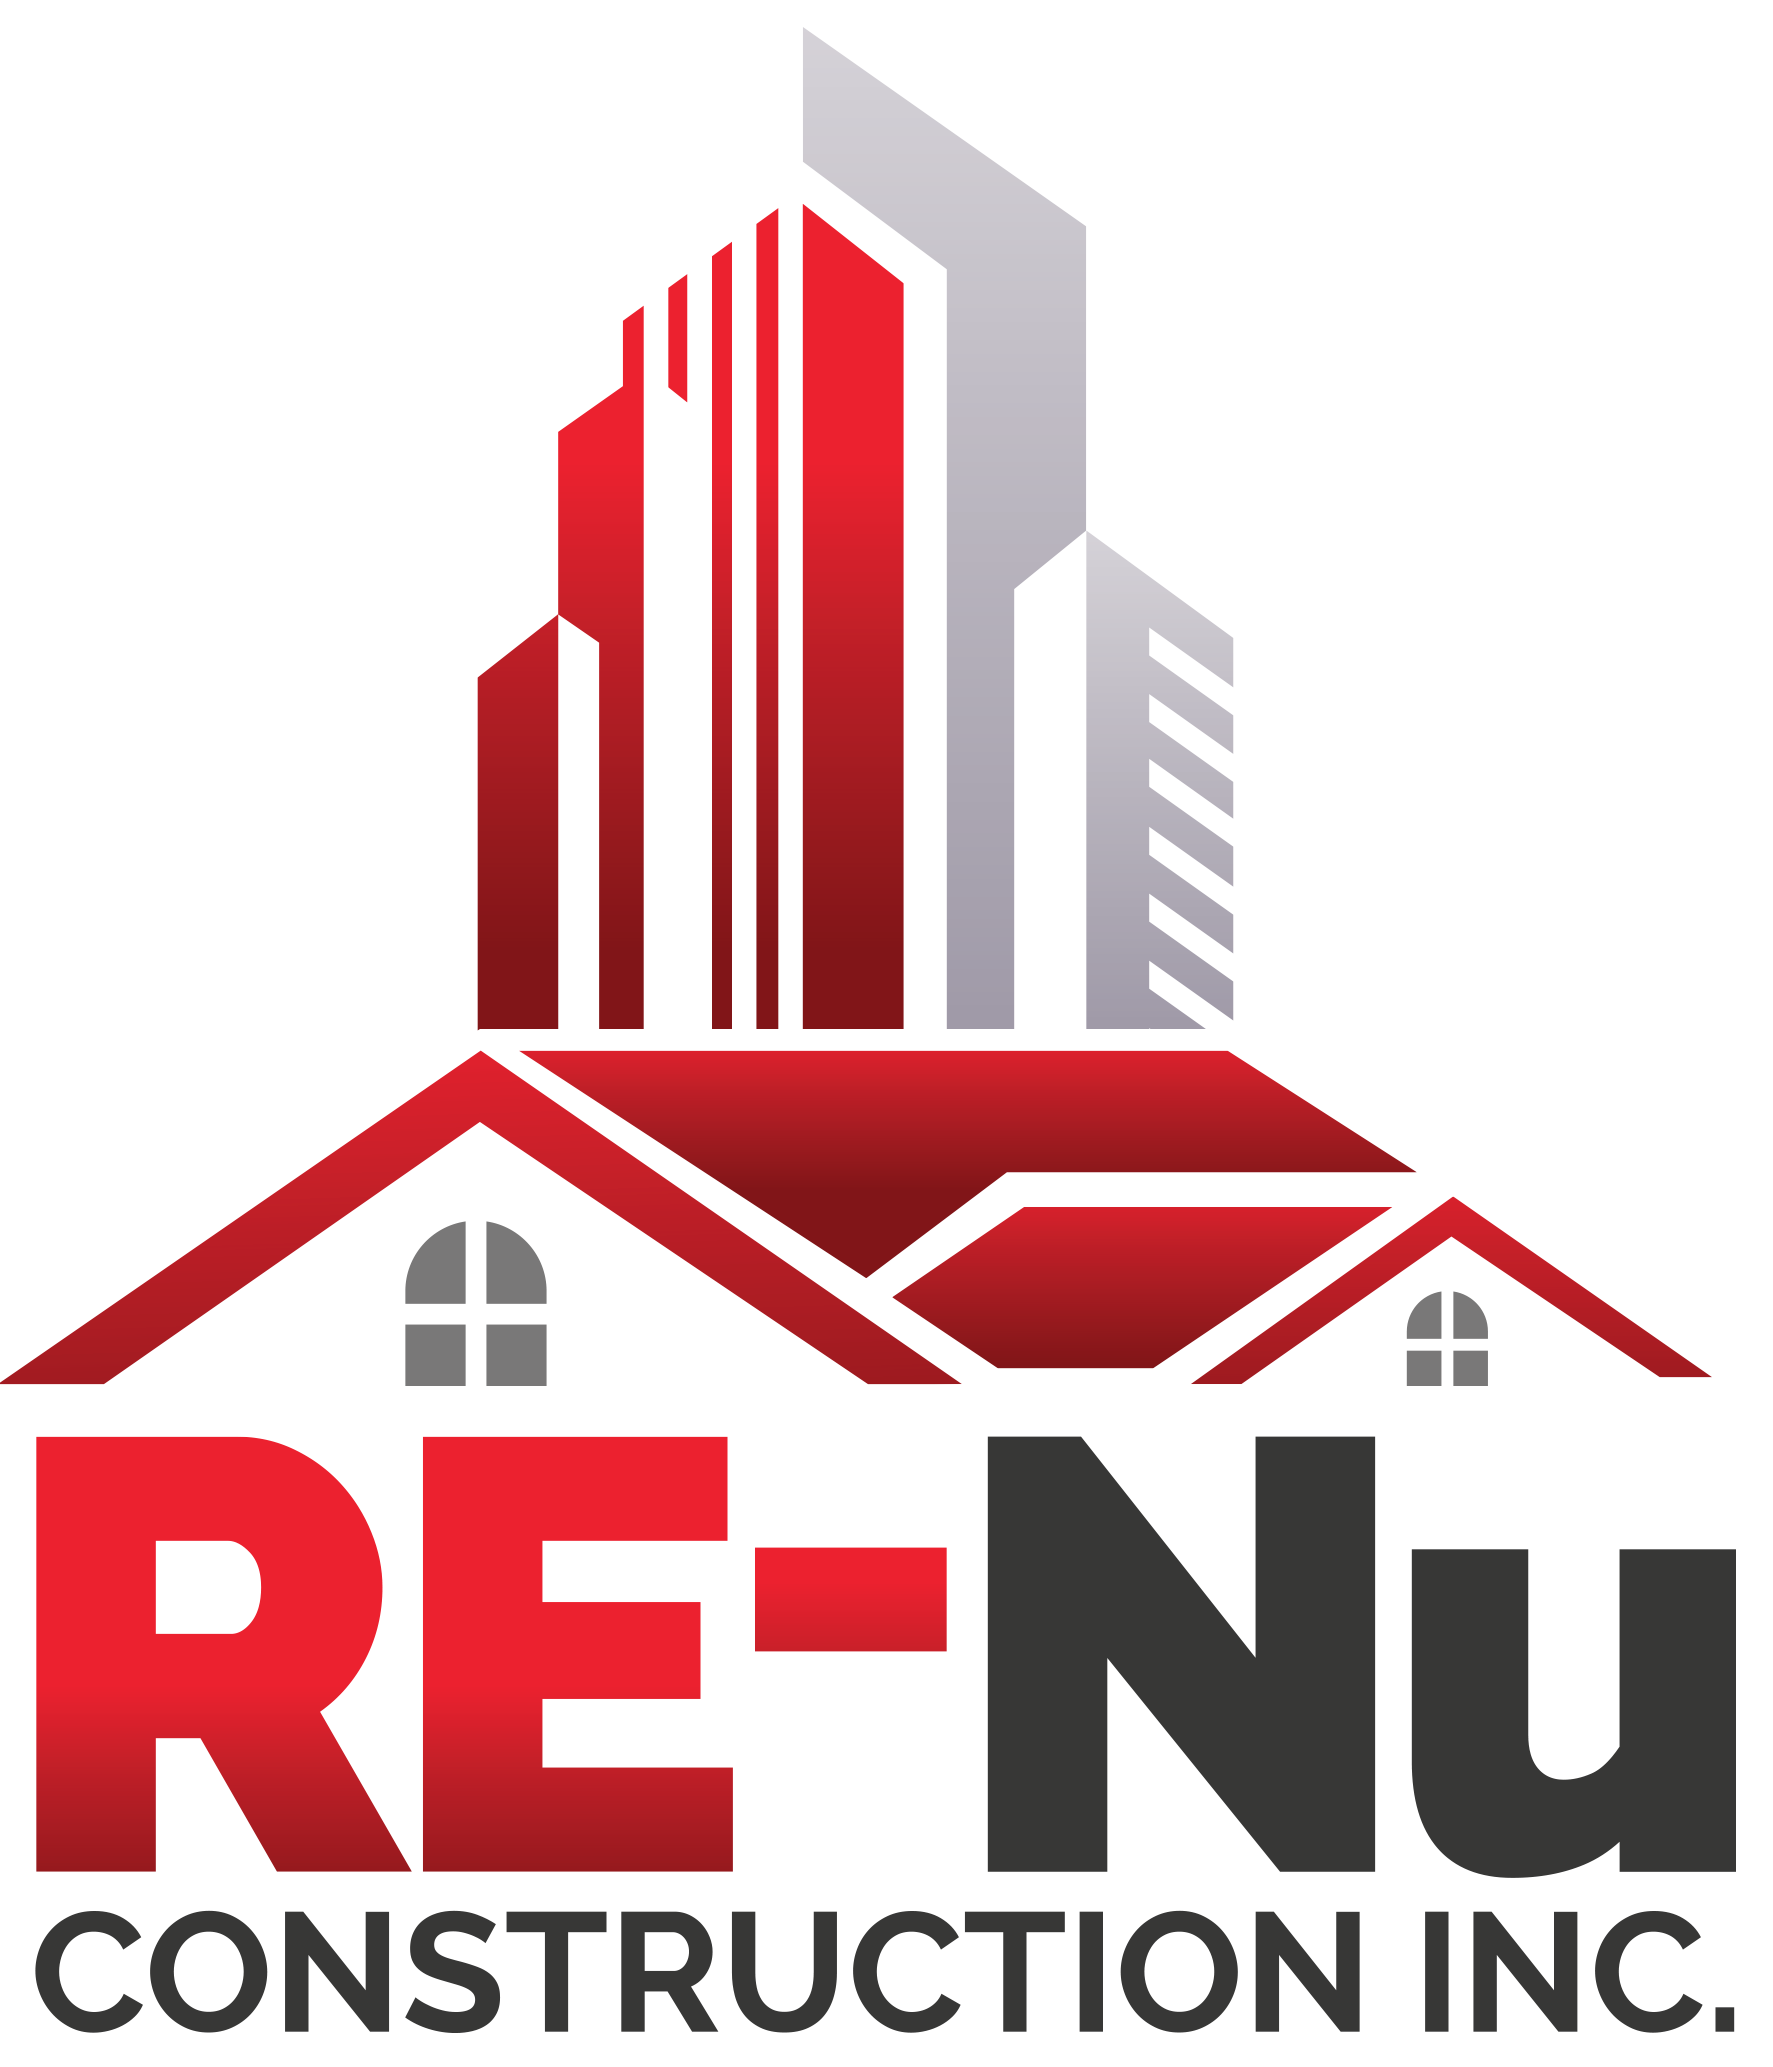 RE-Nu Construction | Remodel and Renovations in San Diego, Carlsbad, Vista and Escondido California